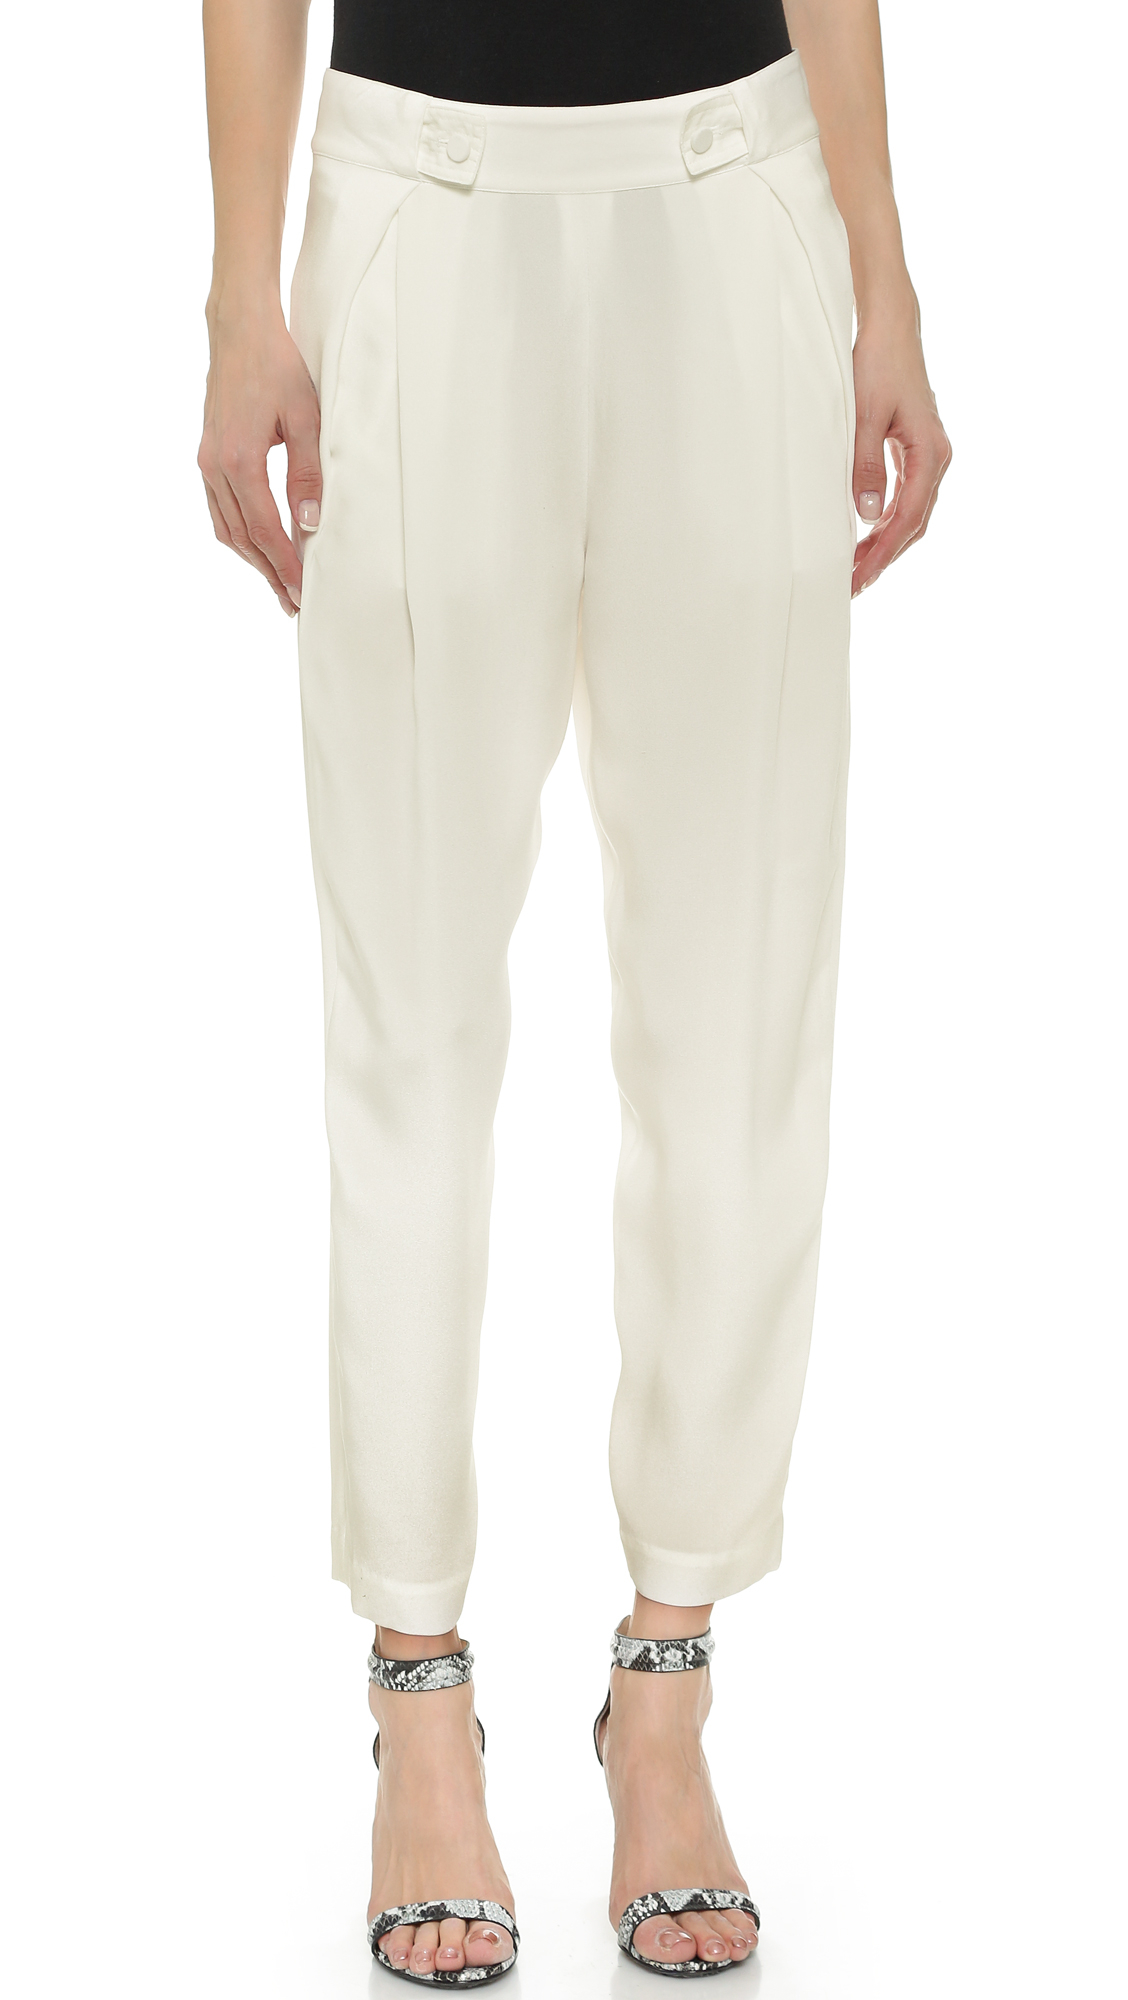 3.1 phillip lim Pinstripe Linen Carrot Pants in White (CLOUD) - Save 51% | Lyst